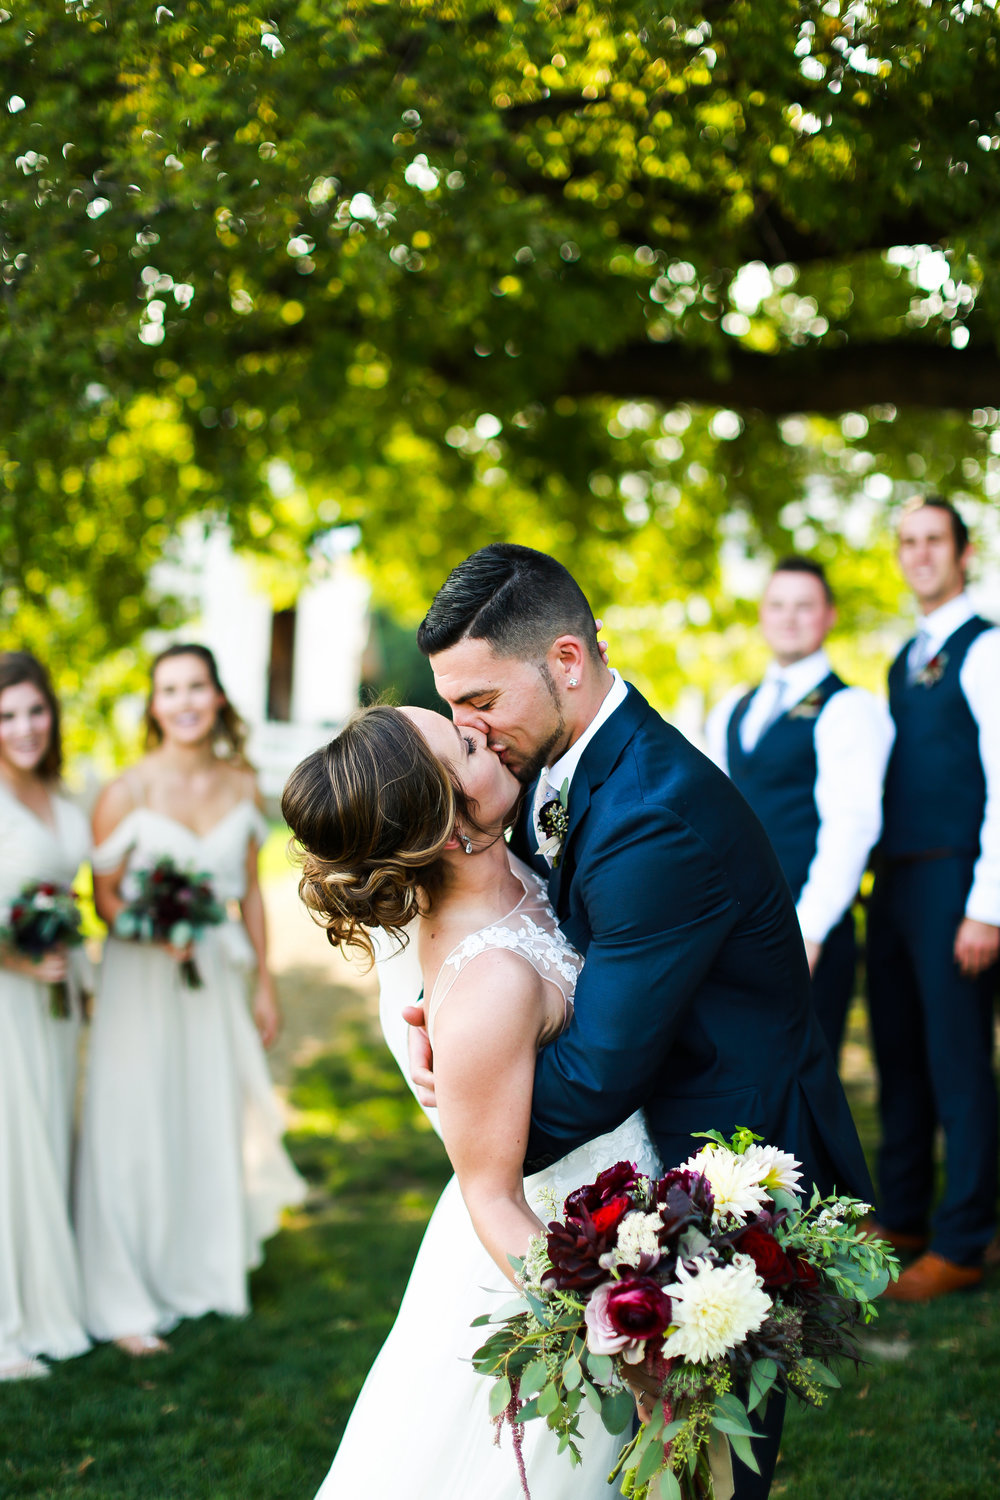 Jenna Kevin Wedding | Sixpence Events day of coordinating | Hannah Schmitt Photography | Legacy Hill Farm | bride and groom photos with bridal party kiss dip